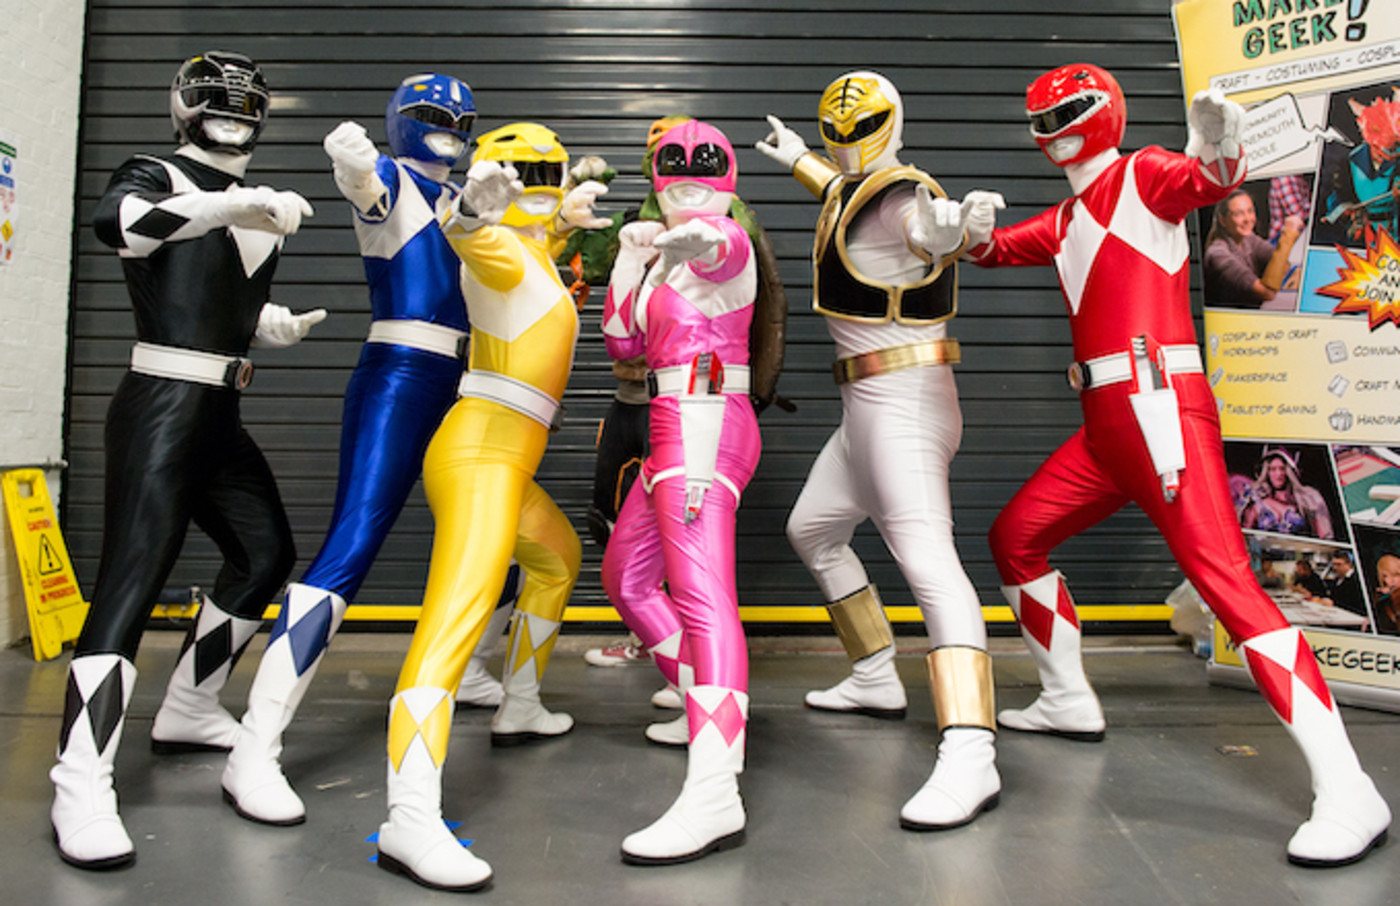 A Power Rangers cosplayer group seen in character during London Film and Comic Con 2019.